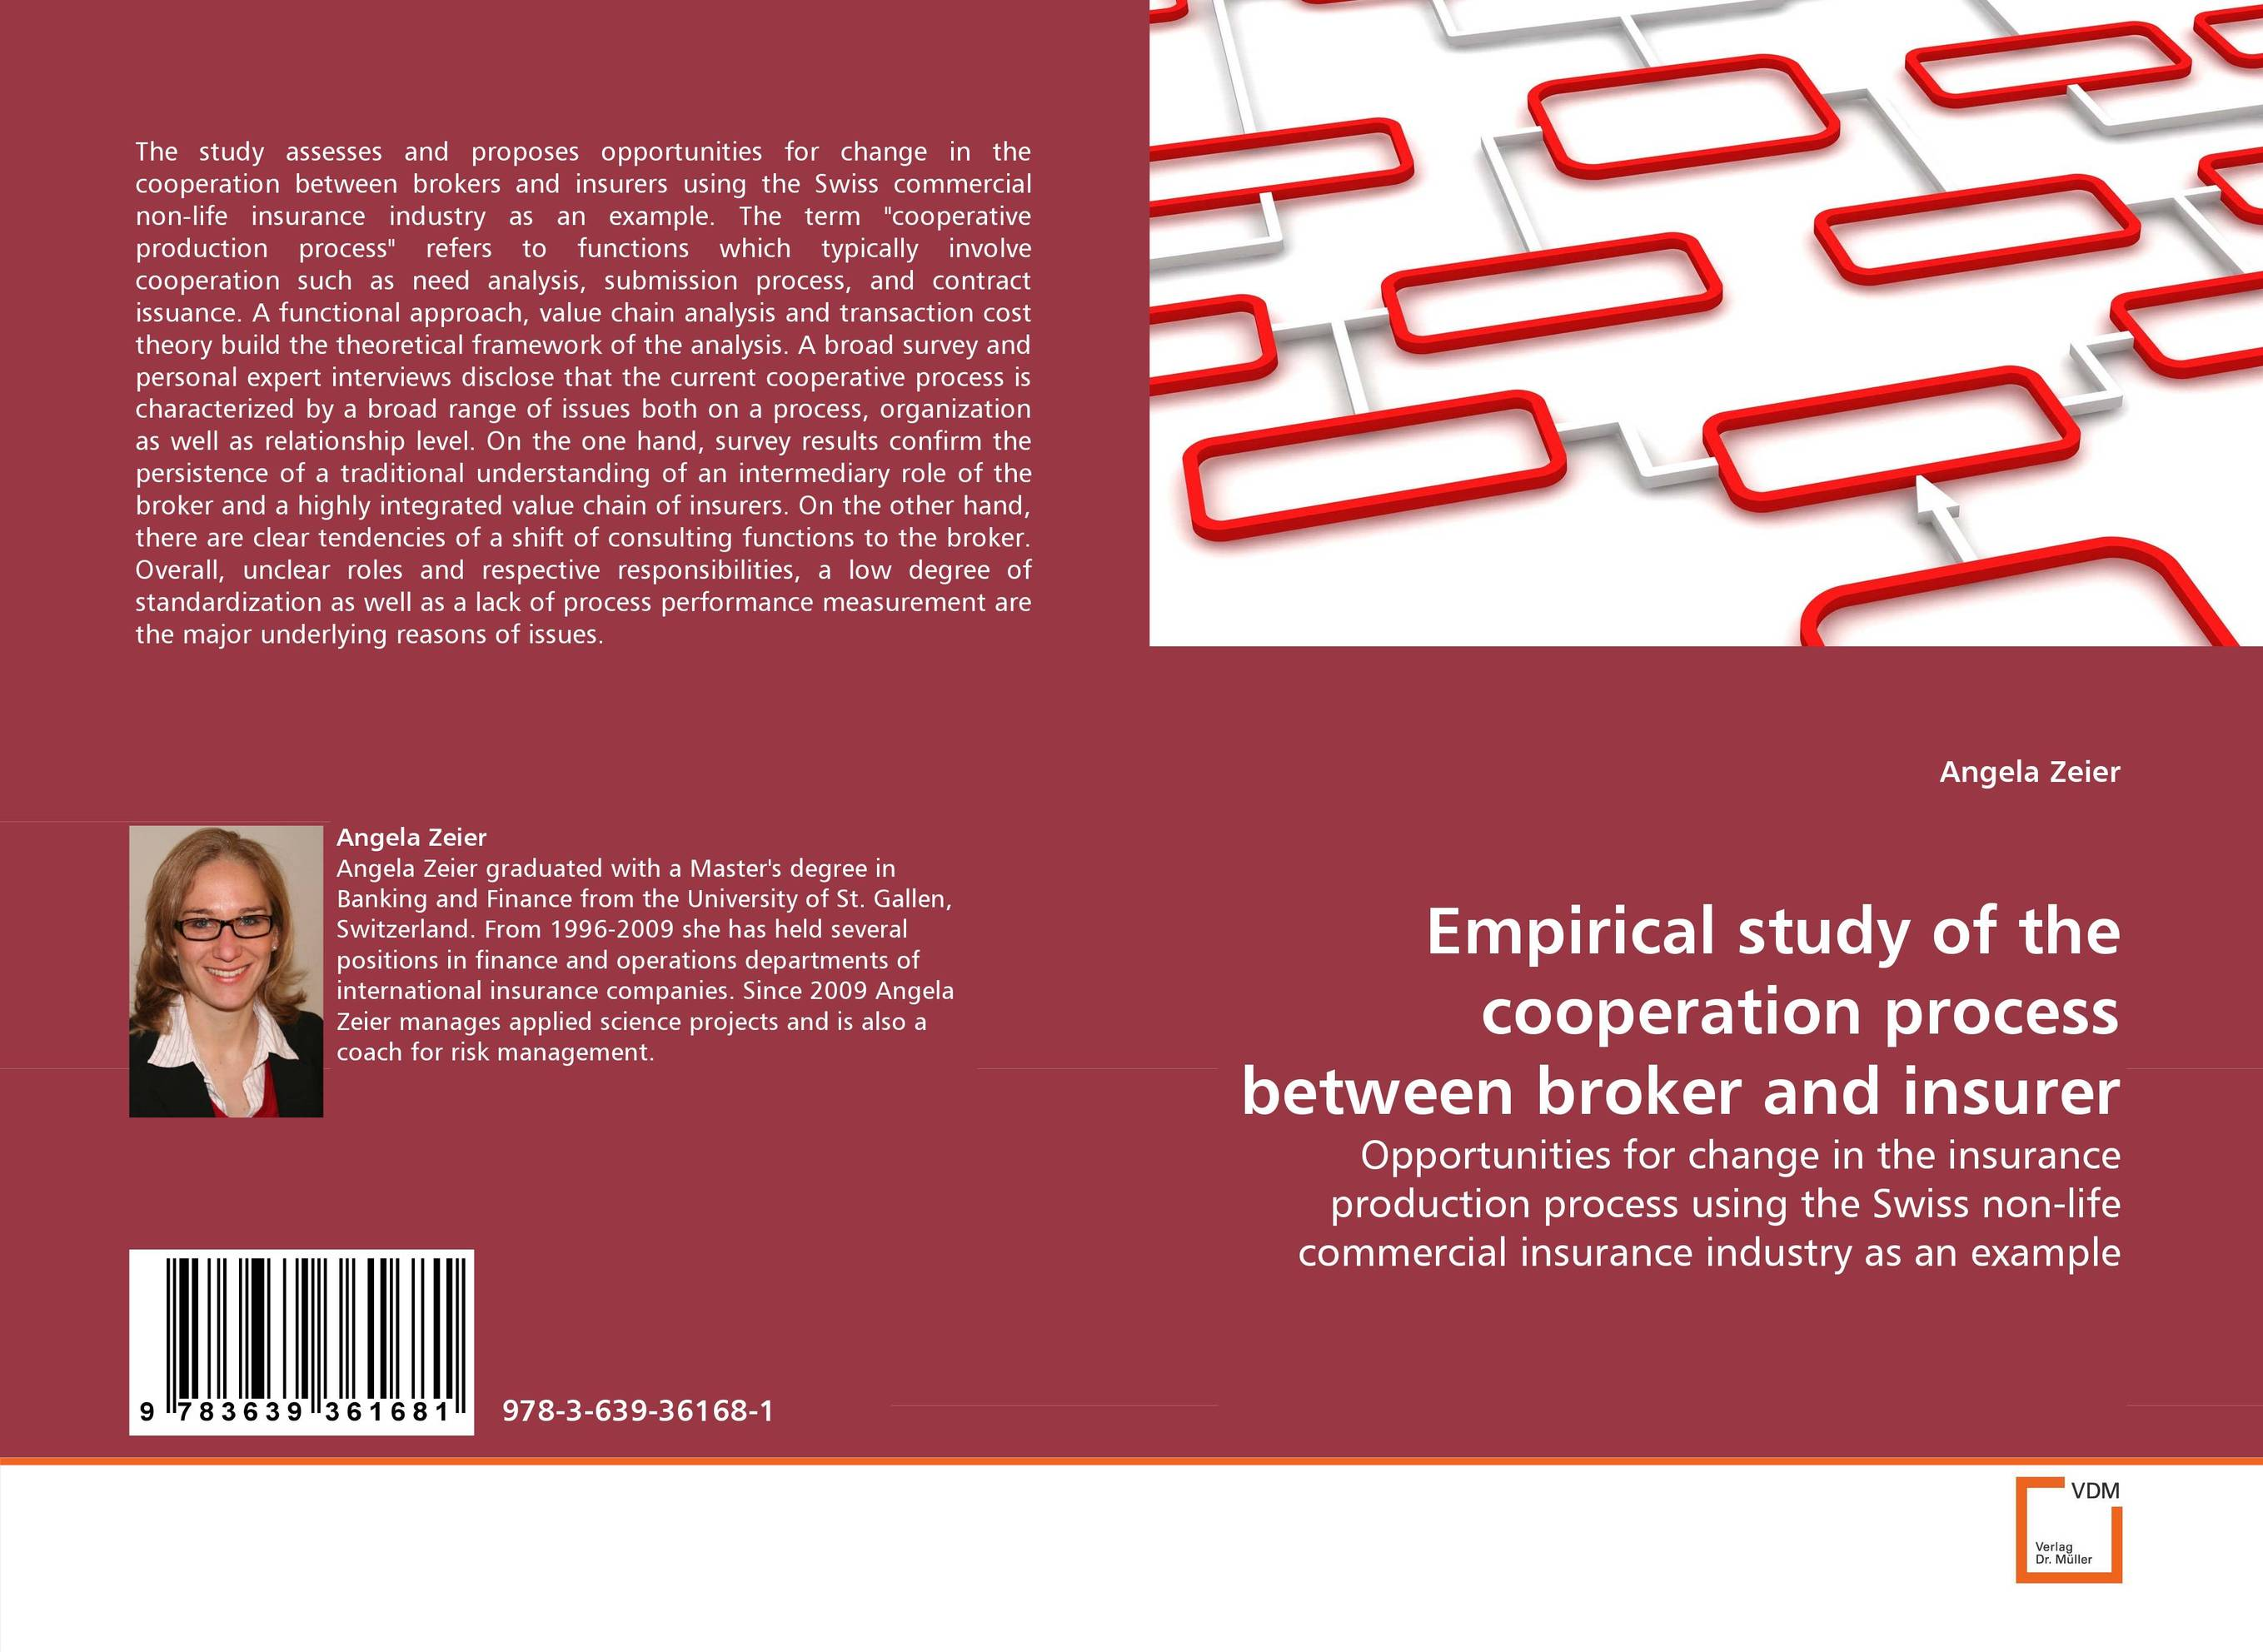 Empirical study of the cooperation process between broker and insurer the submission